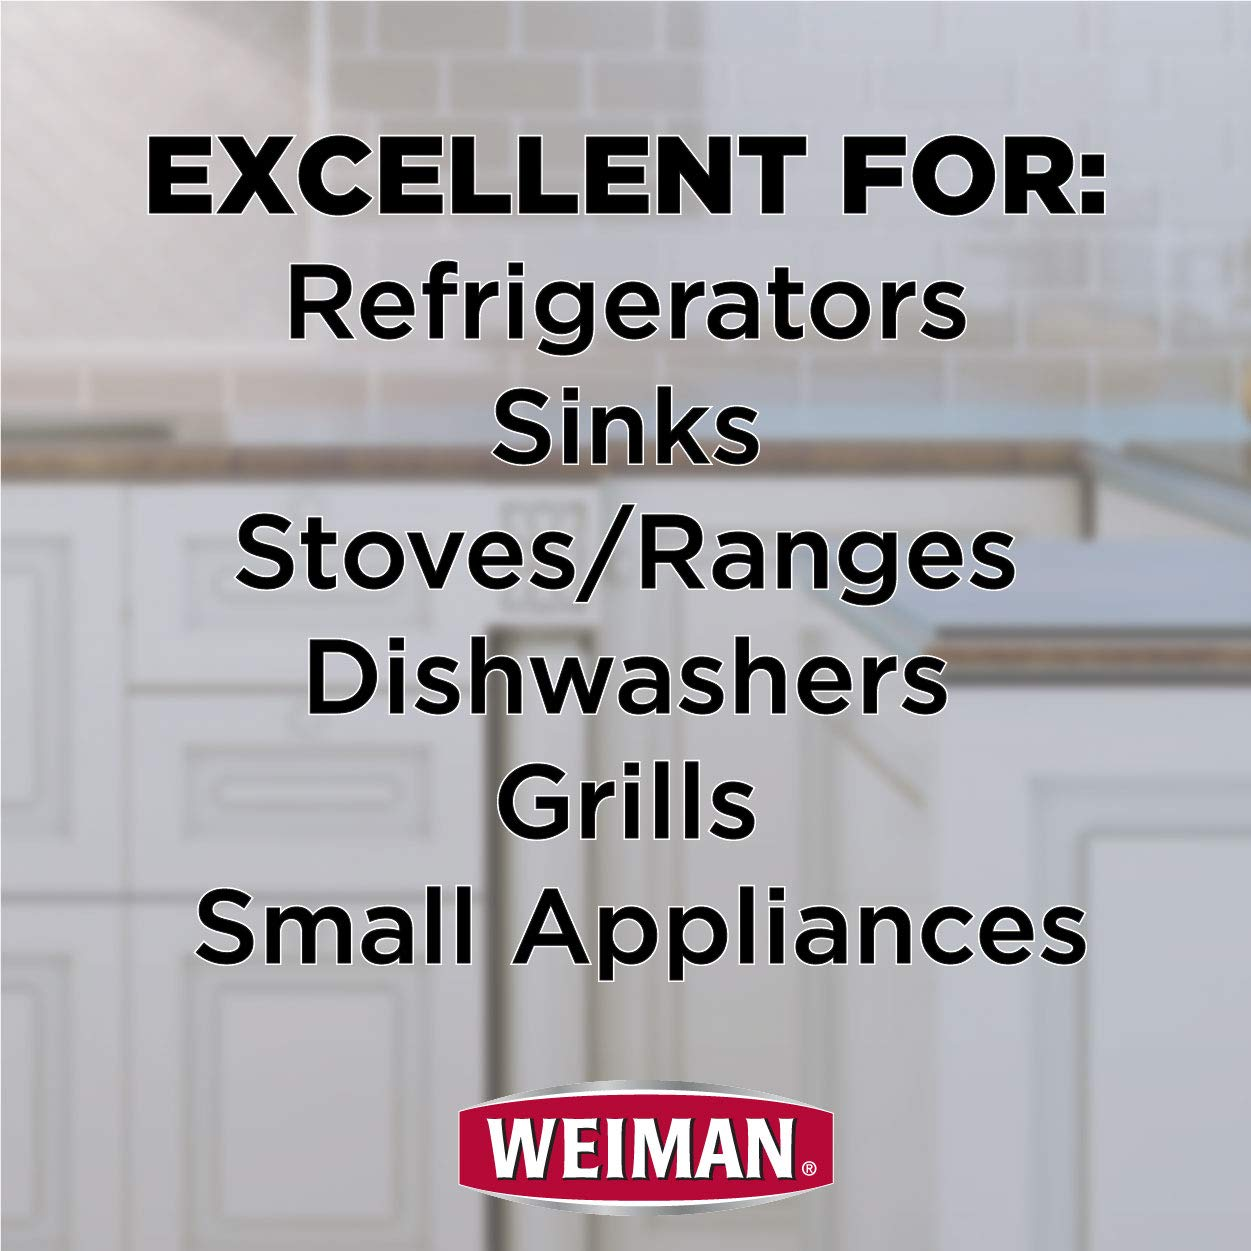 Weiman Stainless Steel Cleaner & Polish 22 fl oz - 6 pack by Weiman (Image #9)